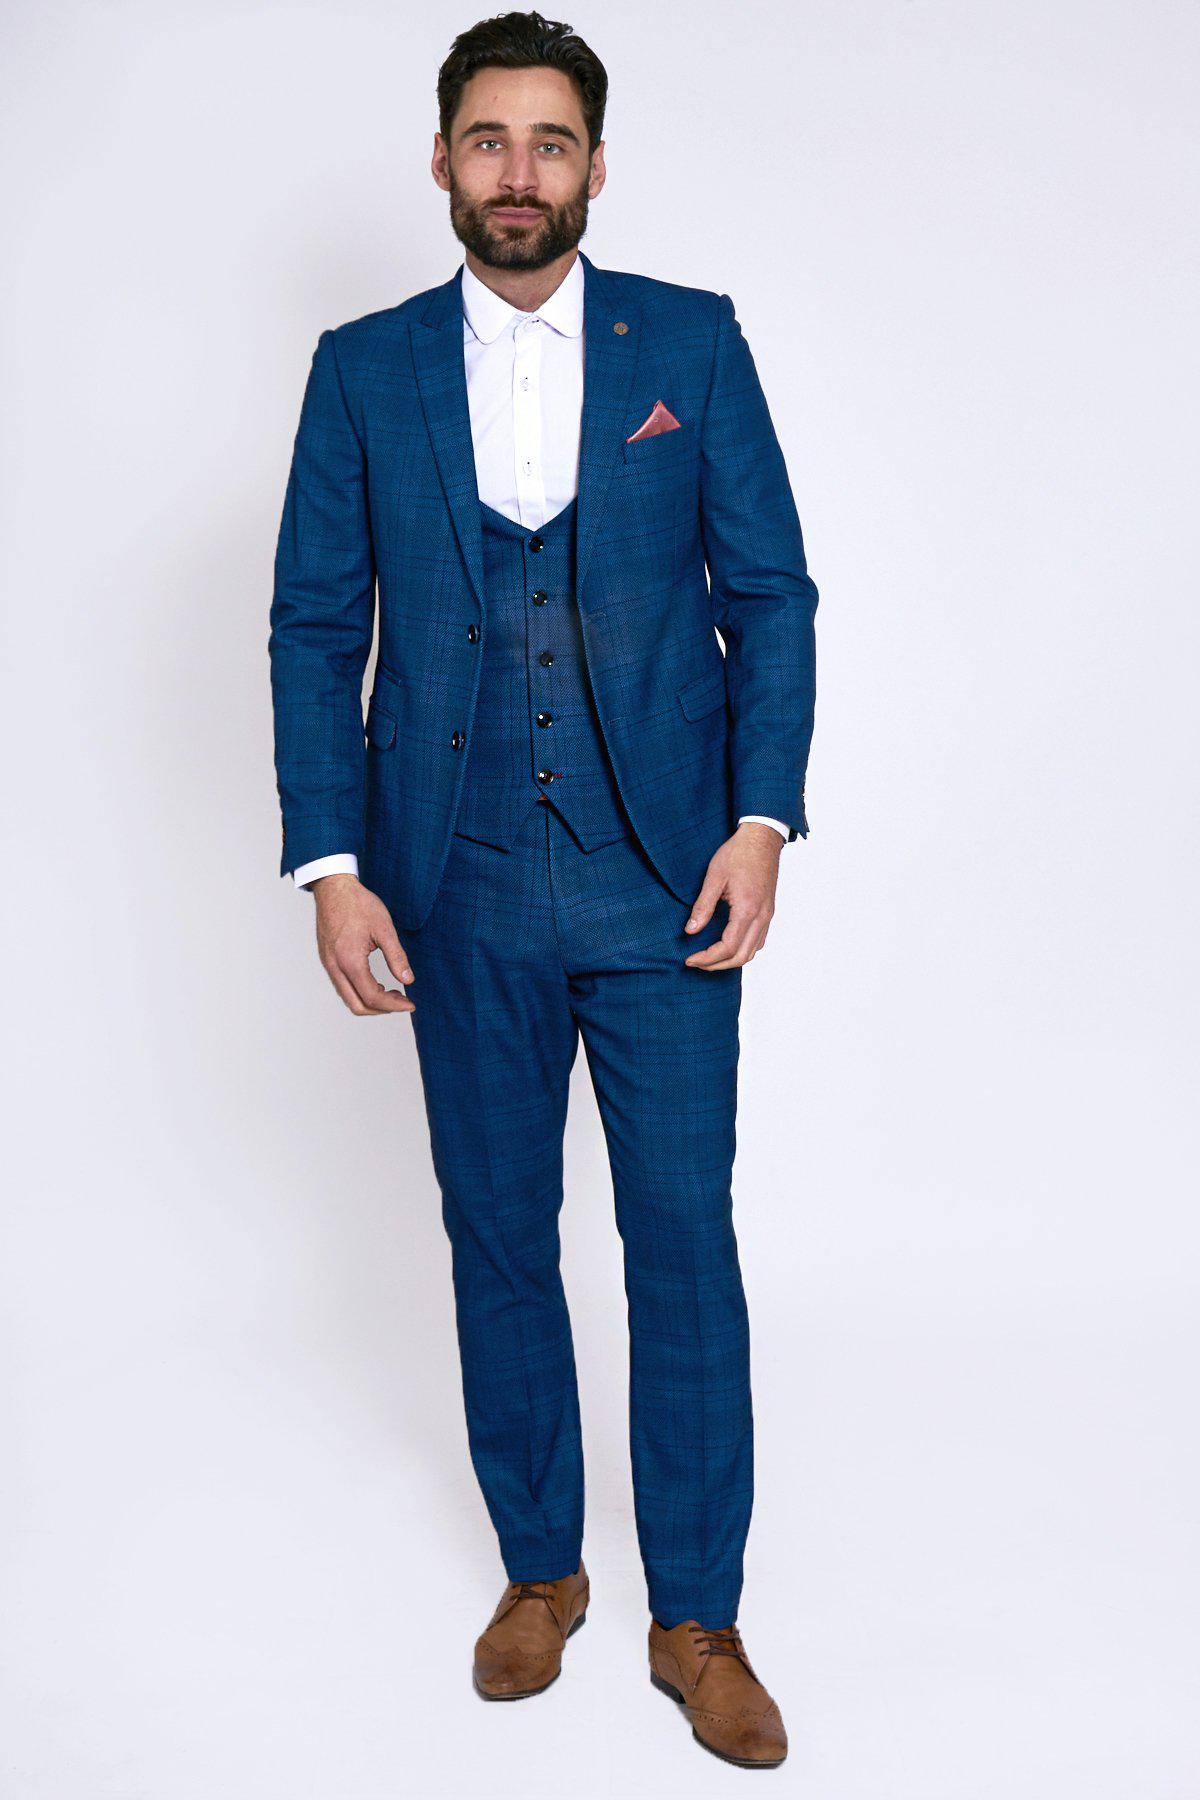 JERRY - Blue Check Suit With Single Breasted Waistcoat